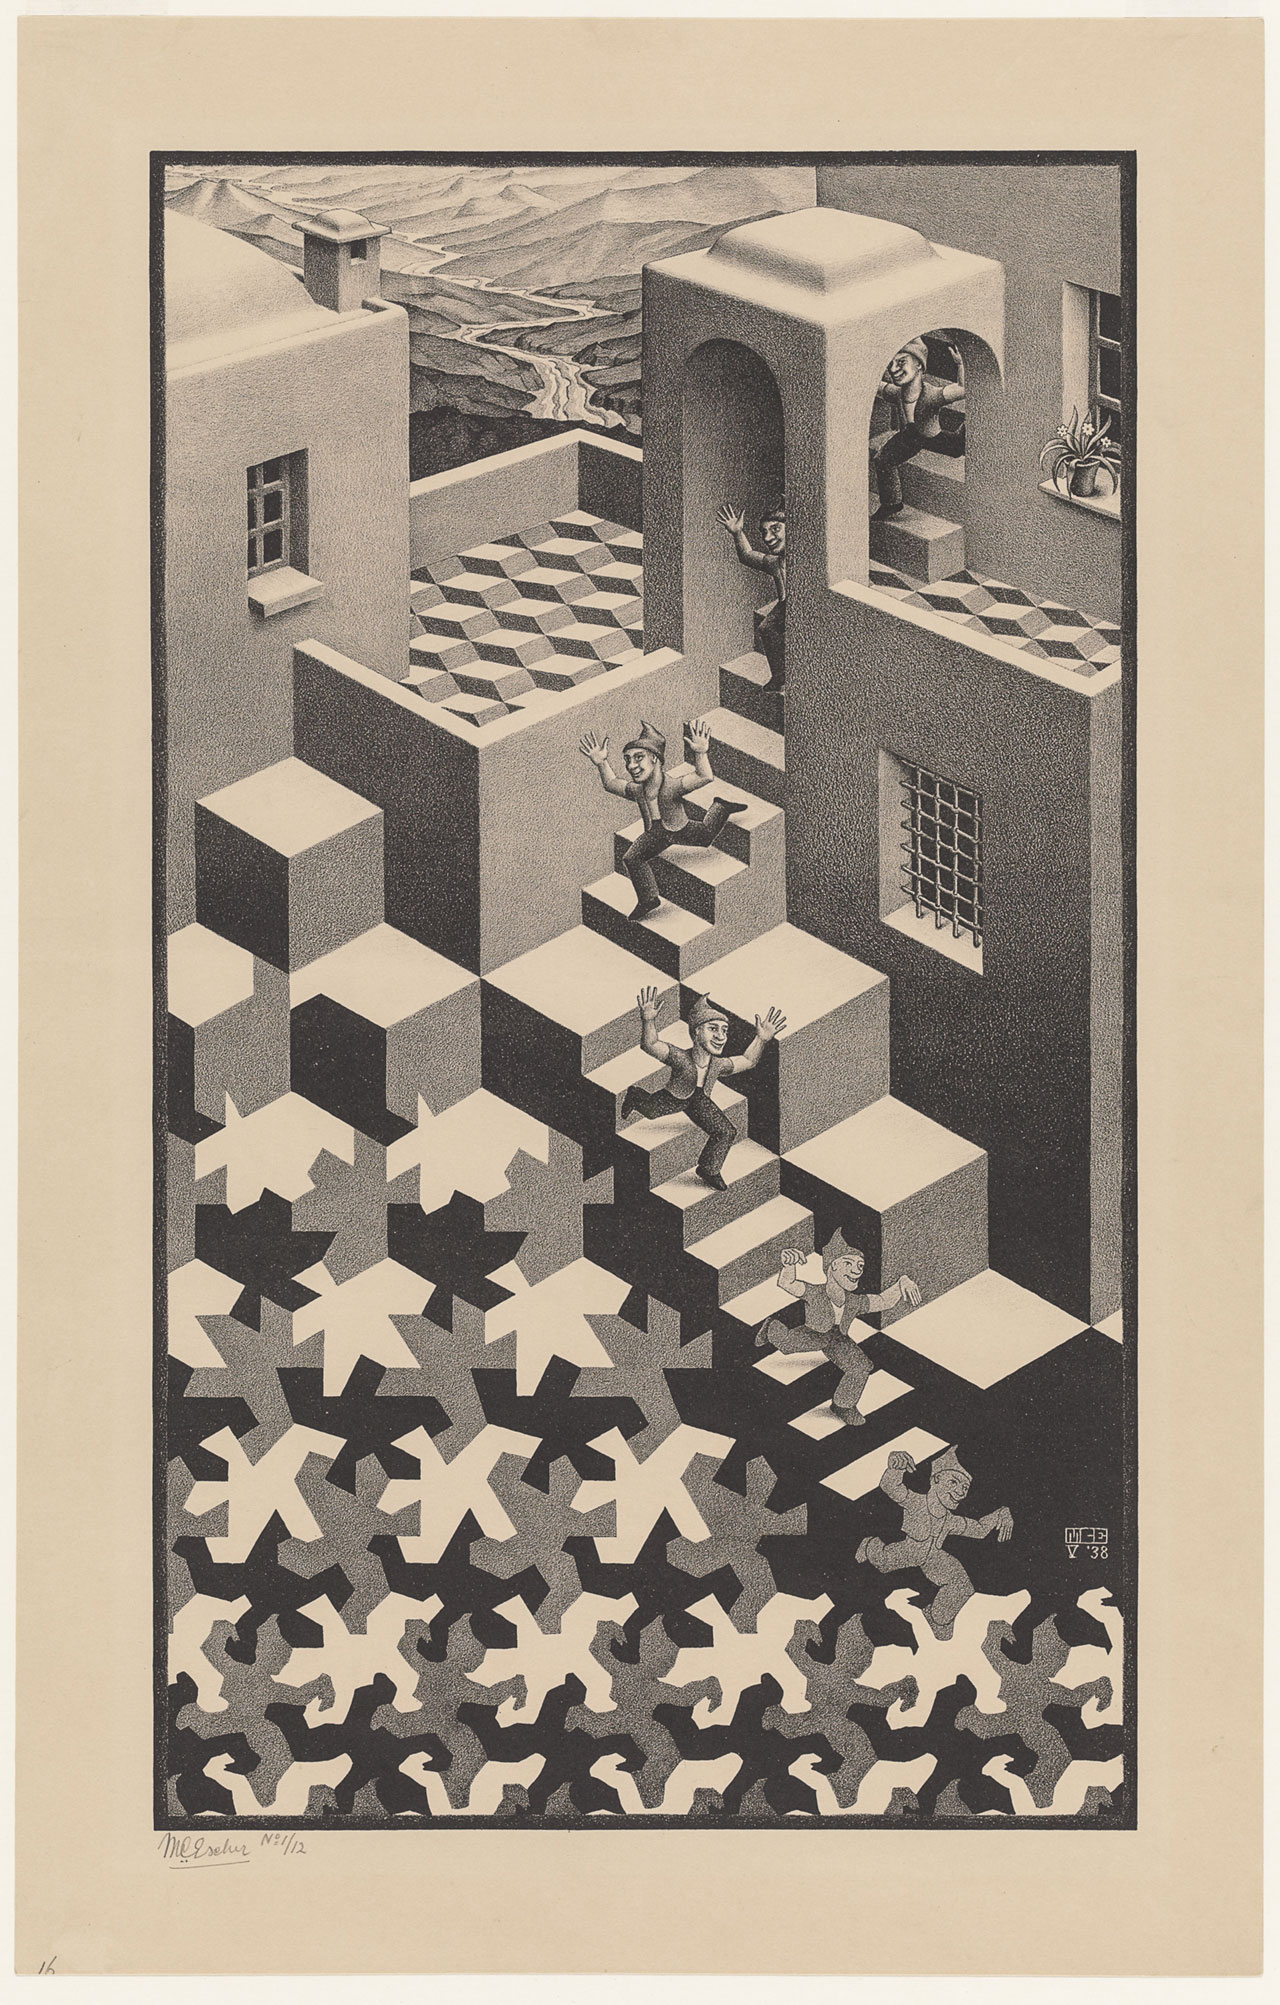 M. C. Escher, Cycle, May 1938, lithograph. Escher Collection, Gemeentemuseum Den Haag, The Hague, the Netherlands© The M. C. Escher Company, the Netherlands. All rights reserved.